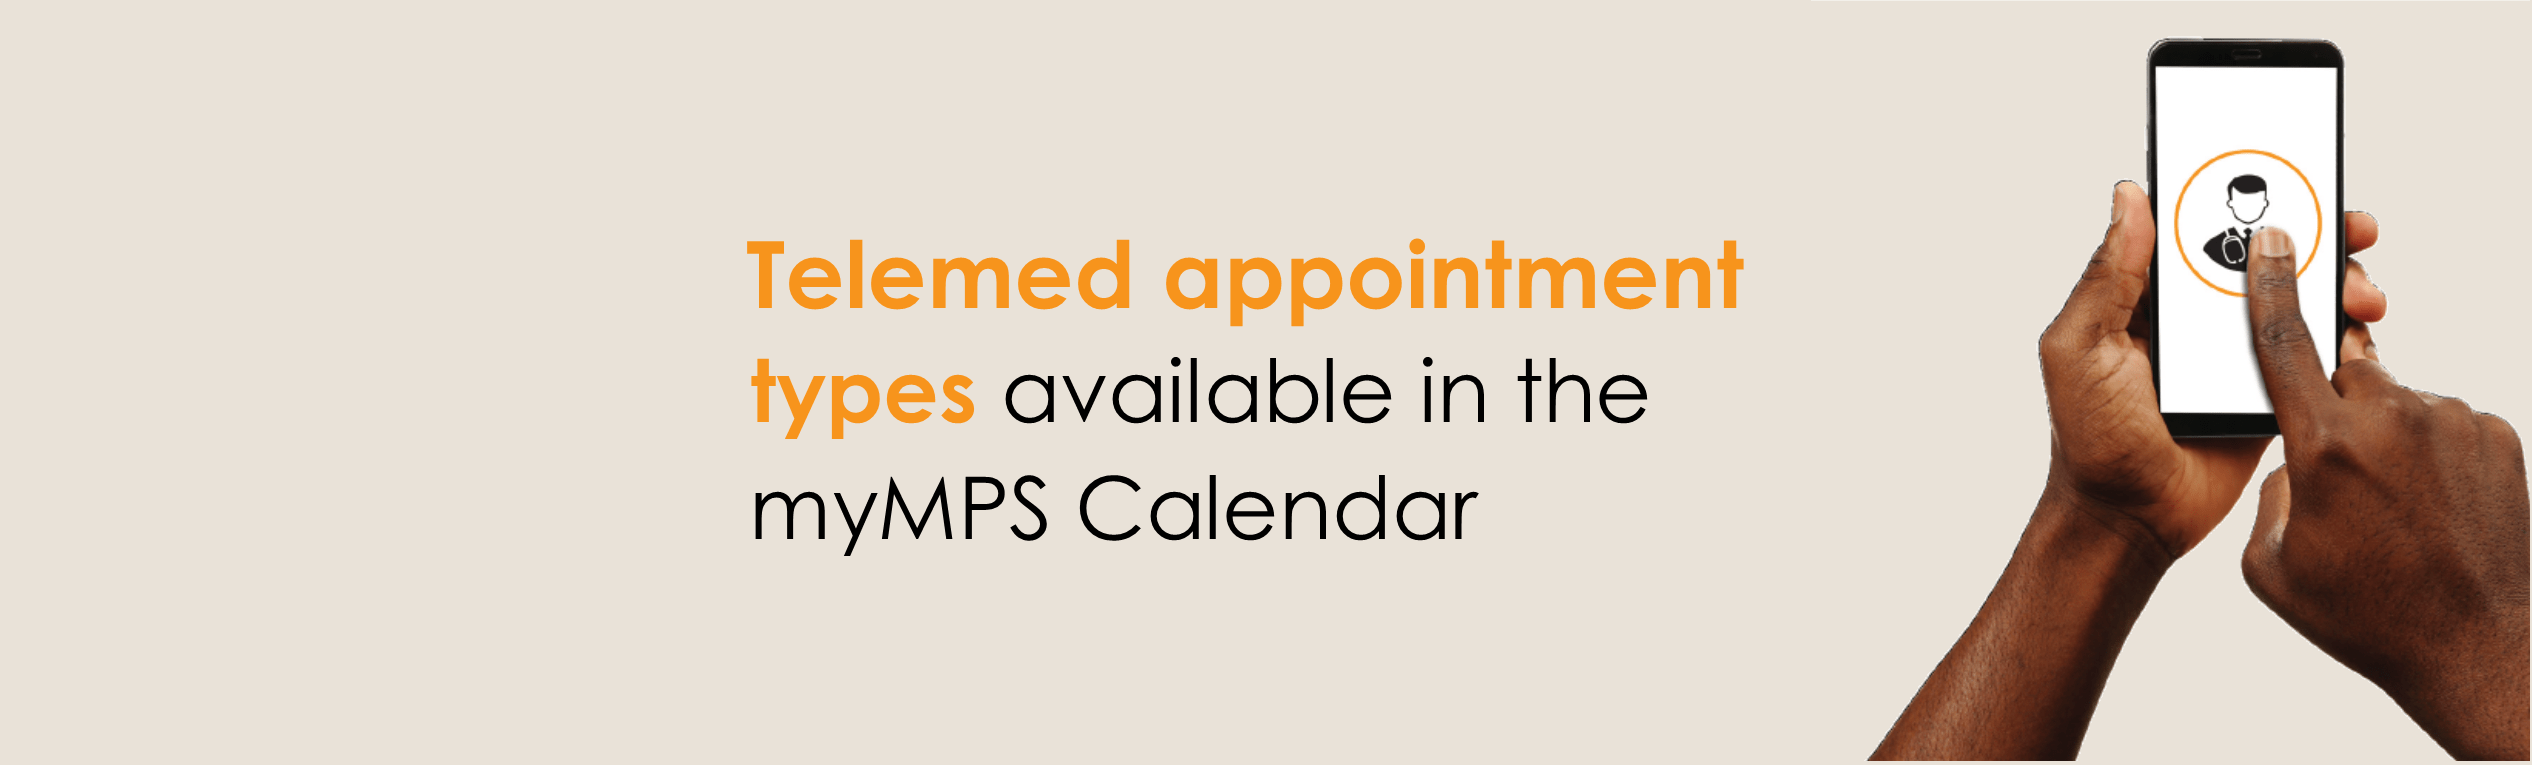 Telehealth appointment types available in the myMPS Calendar